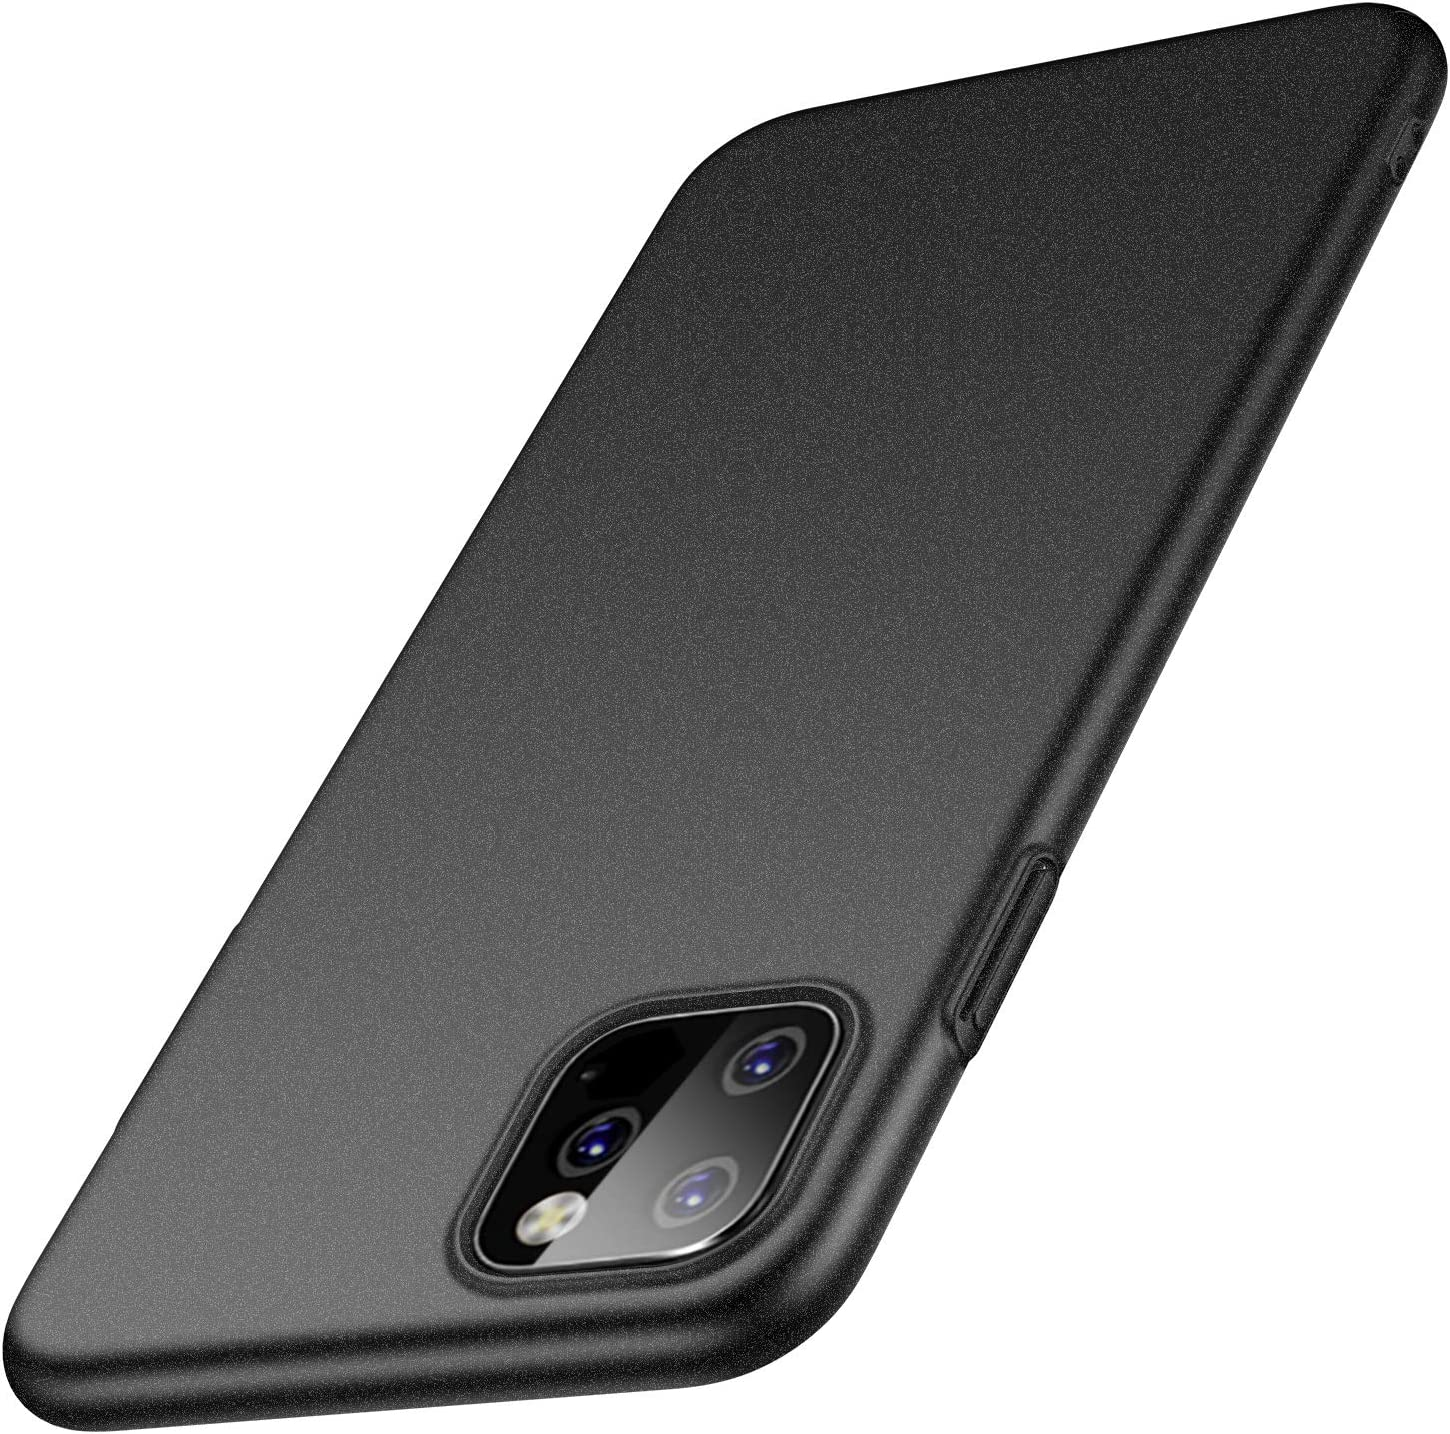 anccer Compatible for Apple iPhone 11 Case with Screen Protector, Ultra-Thin Premium Material Slim Cover for iPhone 11 6.1 Inch (2019) - Gravel Black